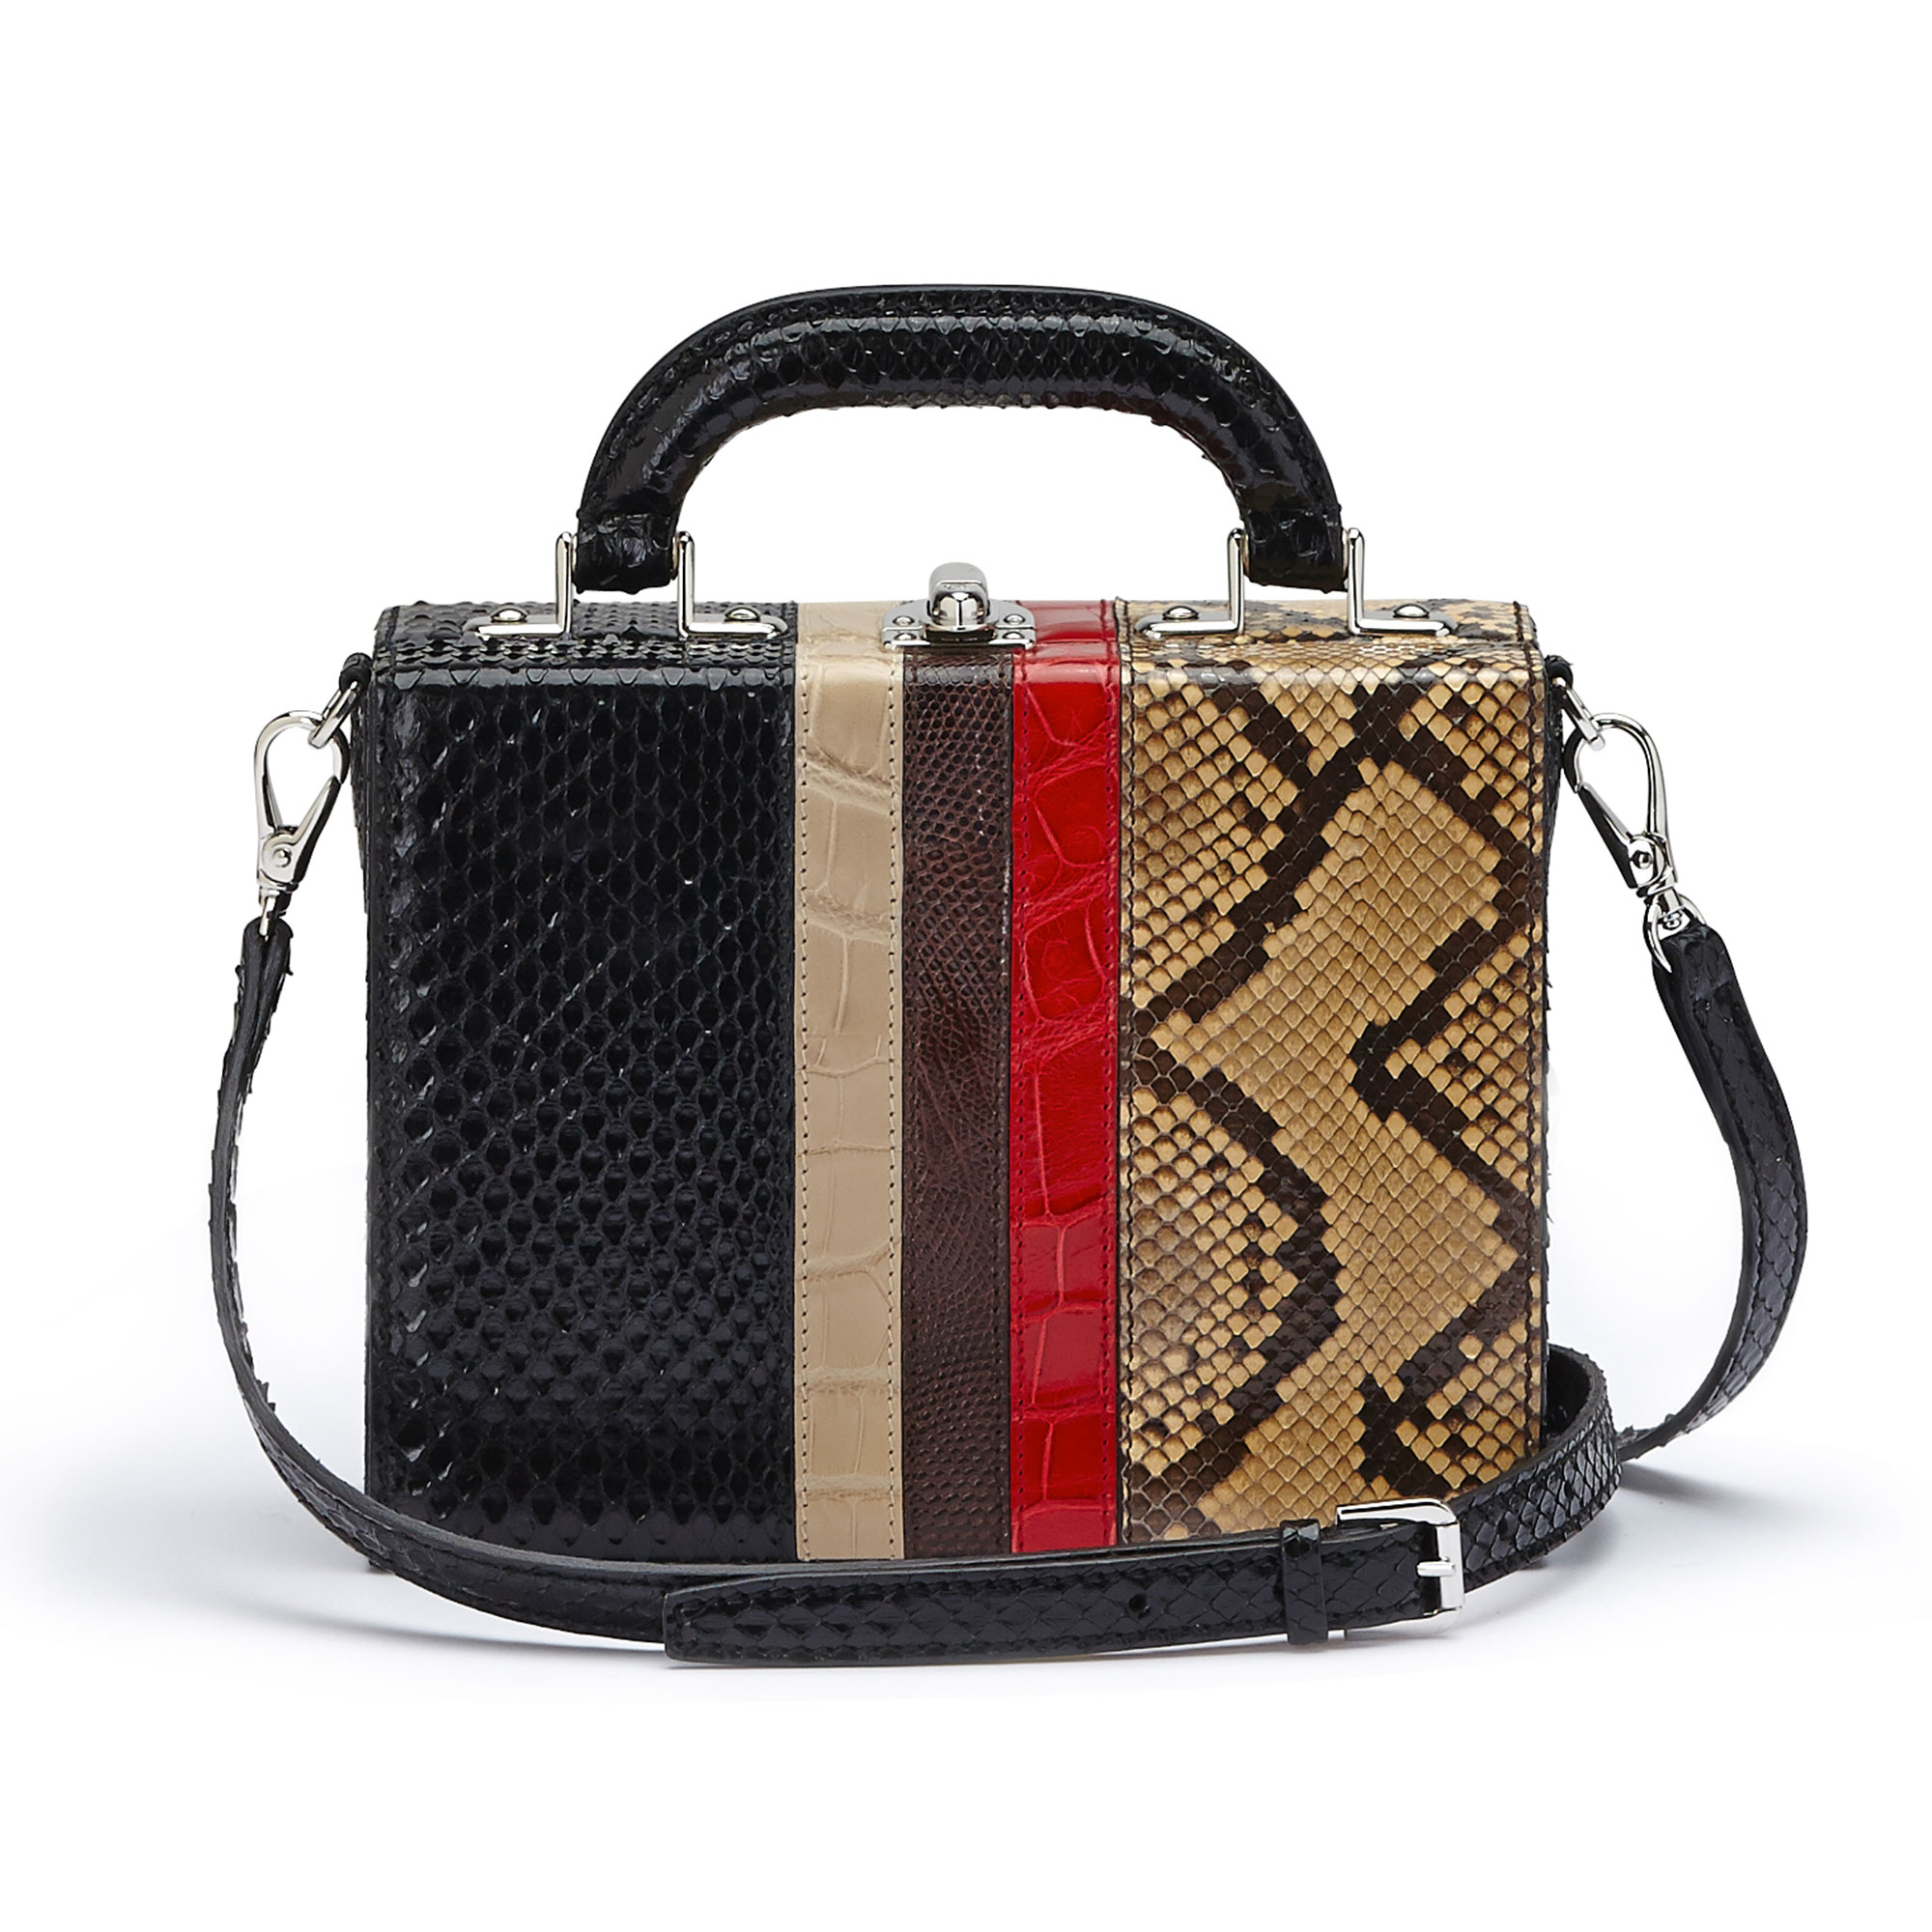 The multi material french calf, alligator, lizard, python Mini Squared Bertoncina bag by Bertoni 1949 03